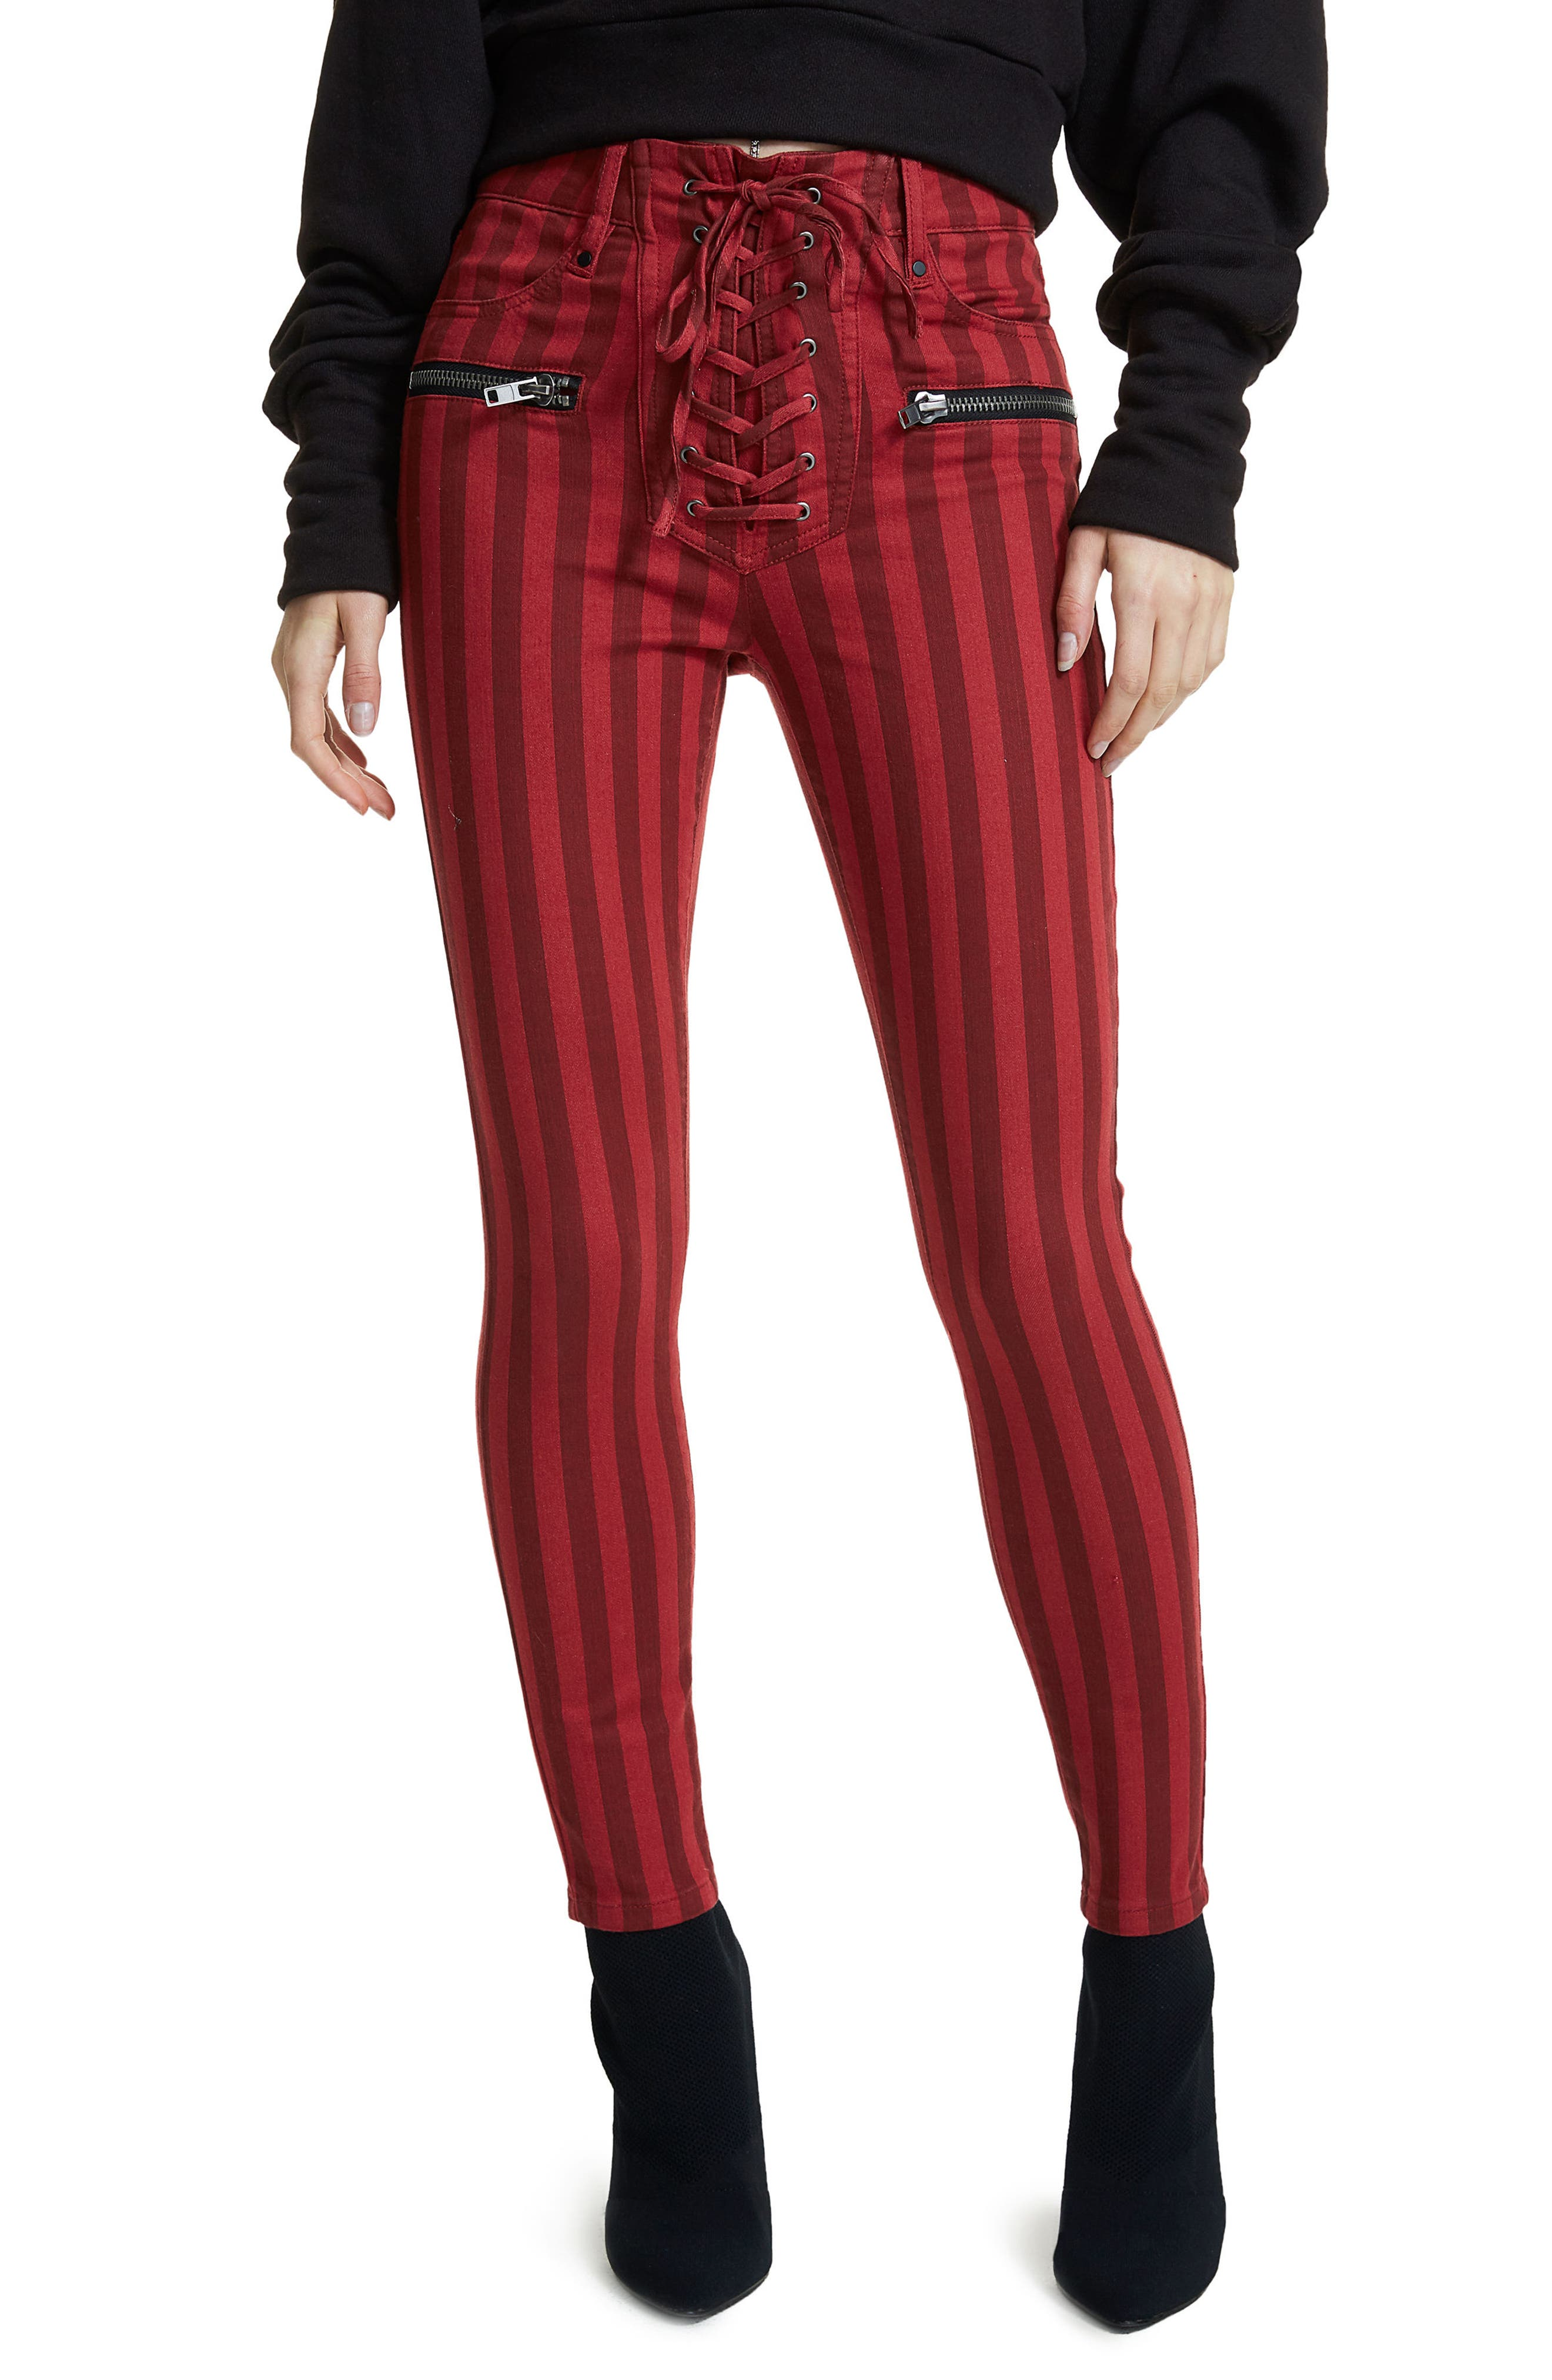 Alden Lace-Up Skinny Jeans,                             Main thumbnail 1, color,                             Red Stripe